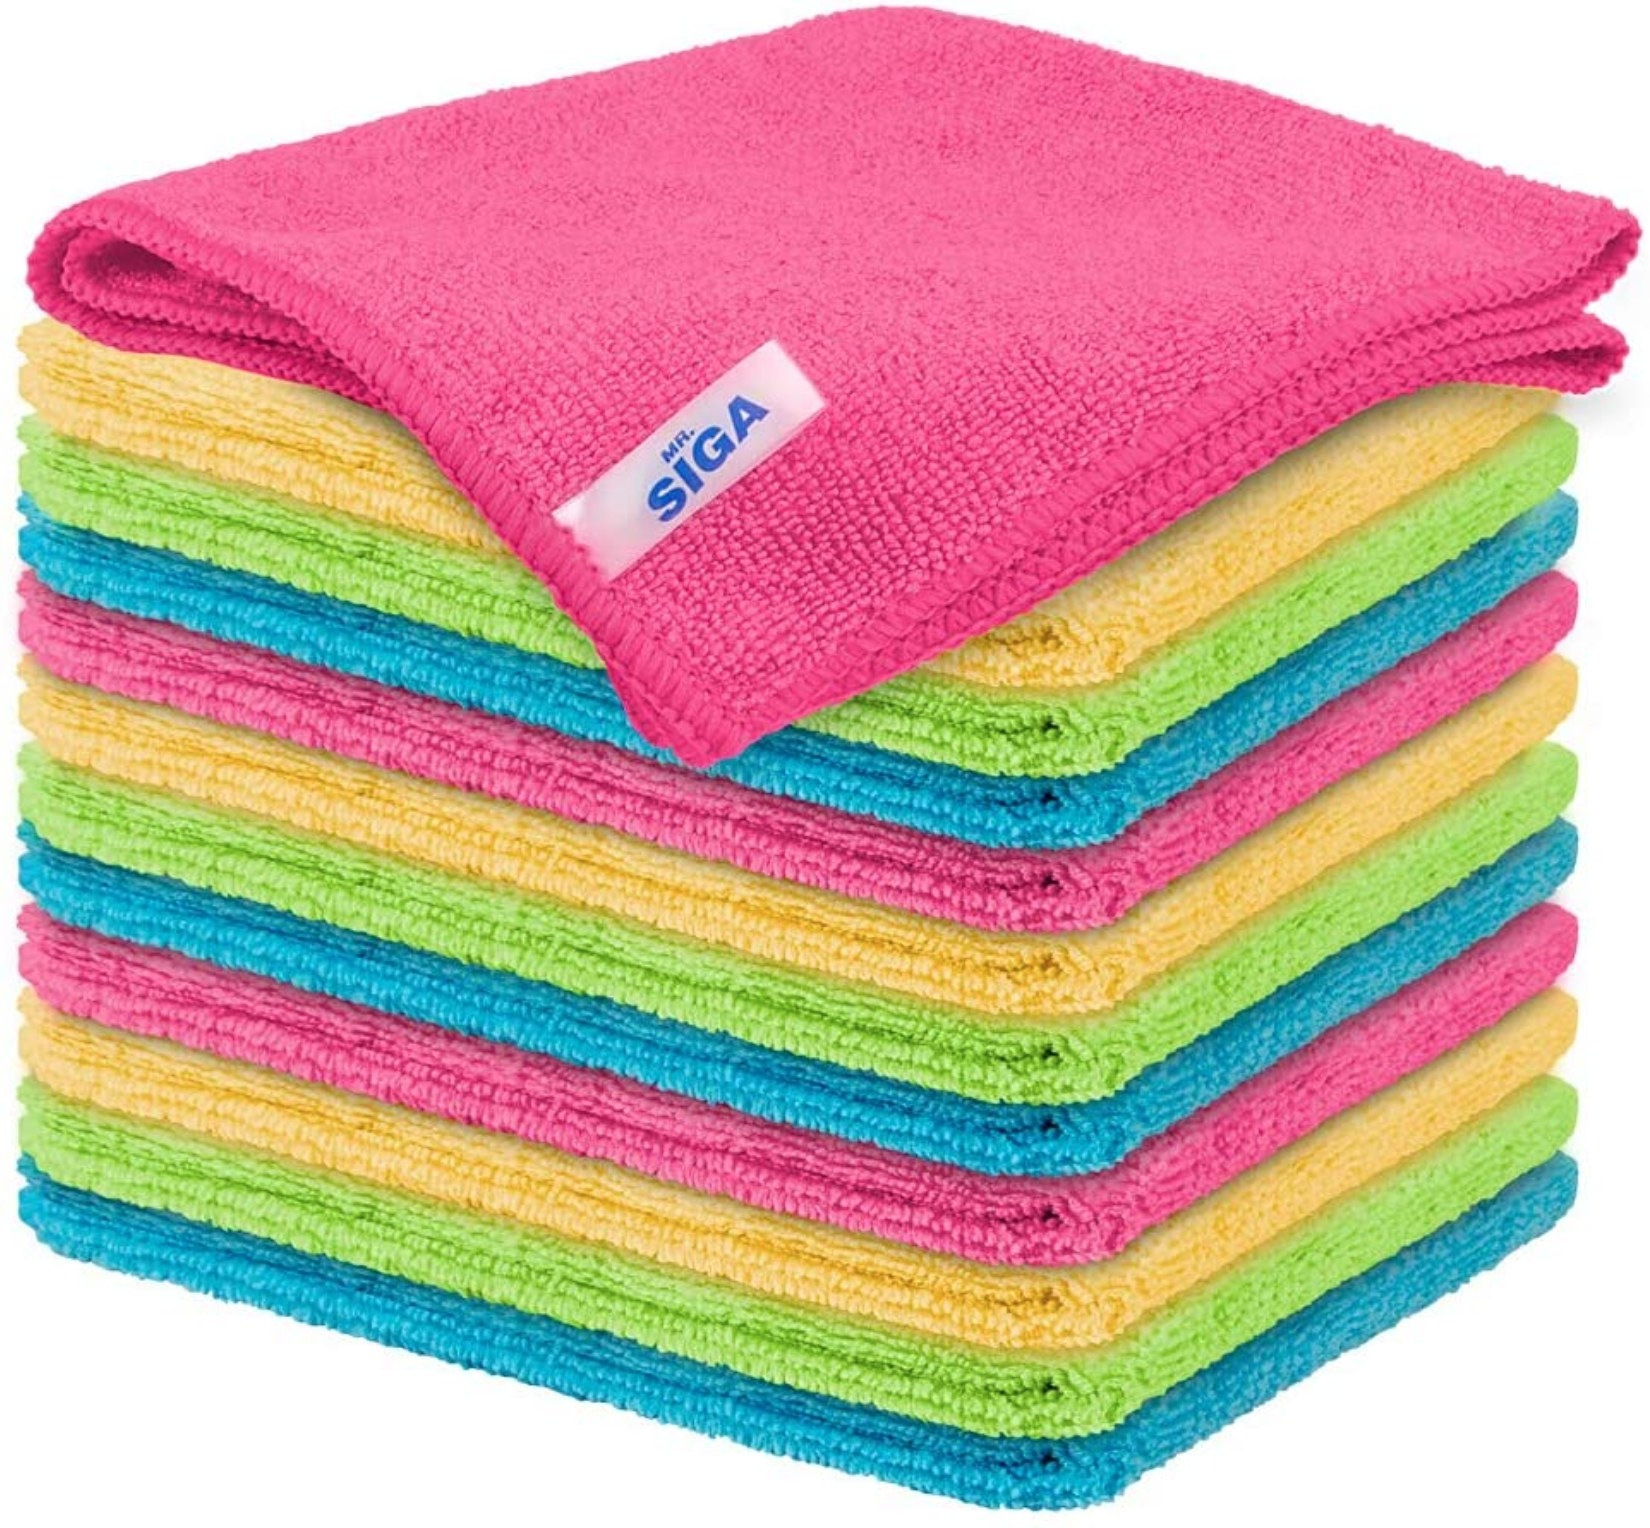 The set of multicolored towels